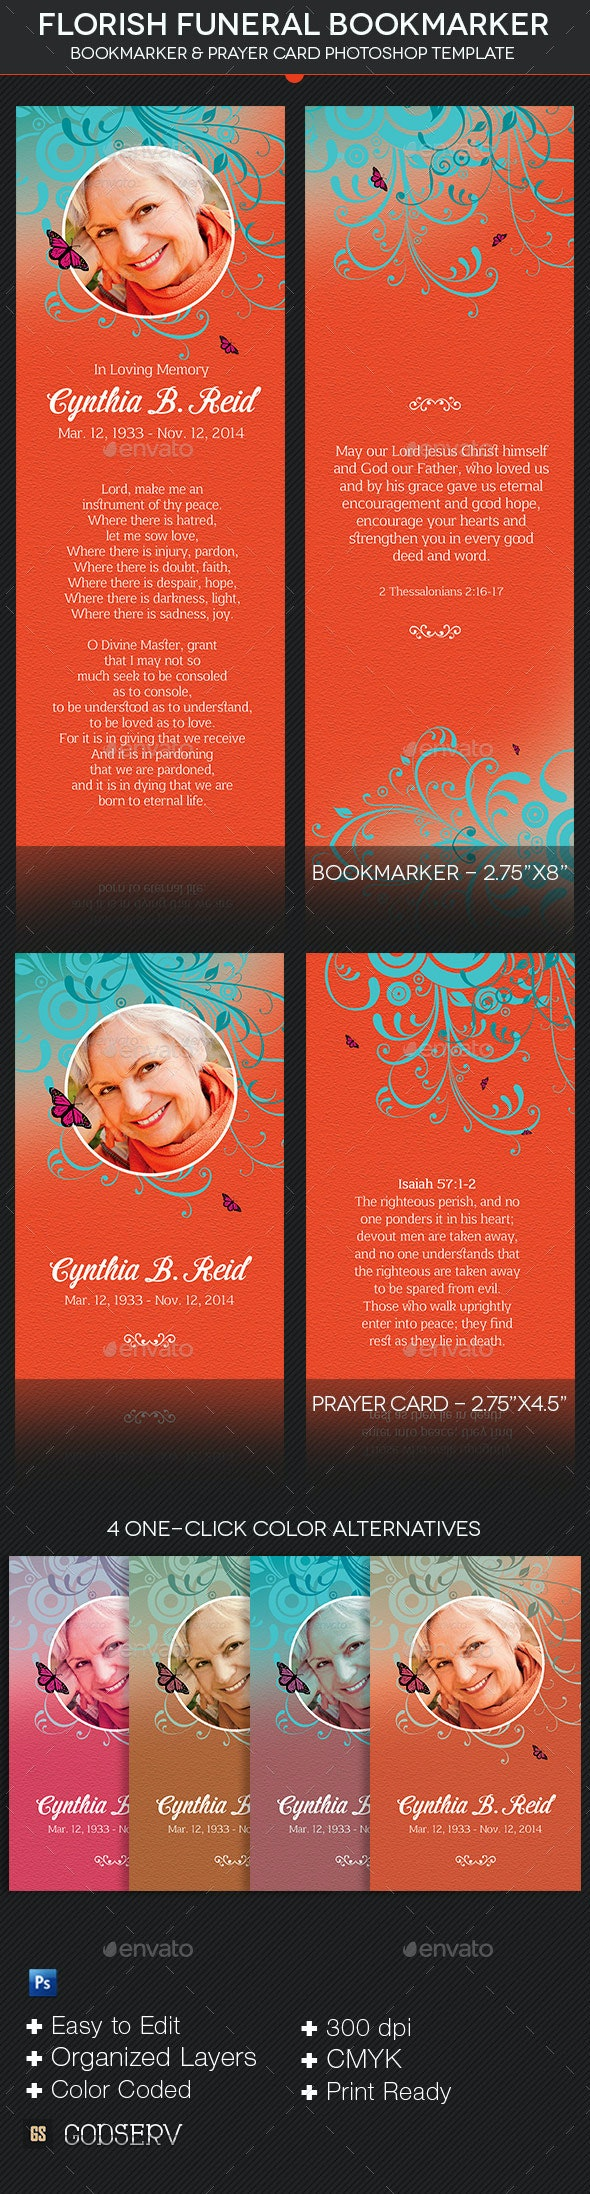 Flourish Funeral Bookmarker Template - Stationery Print Templates